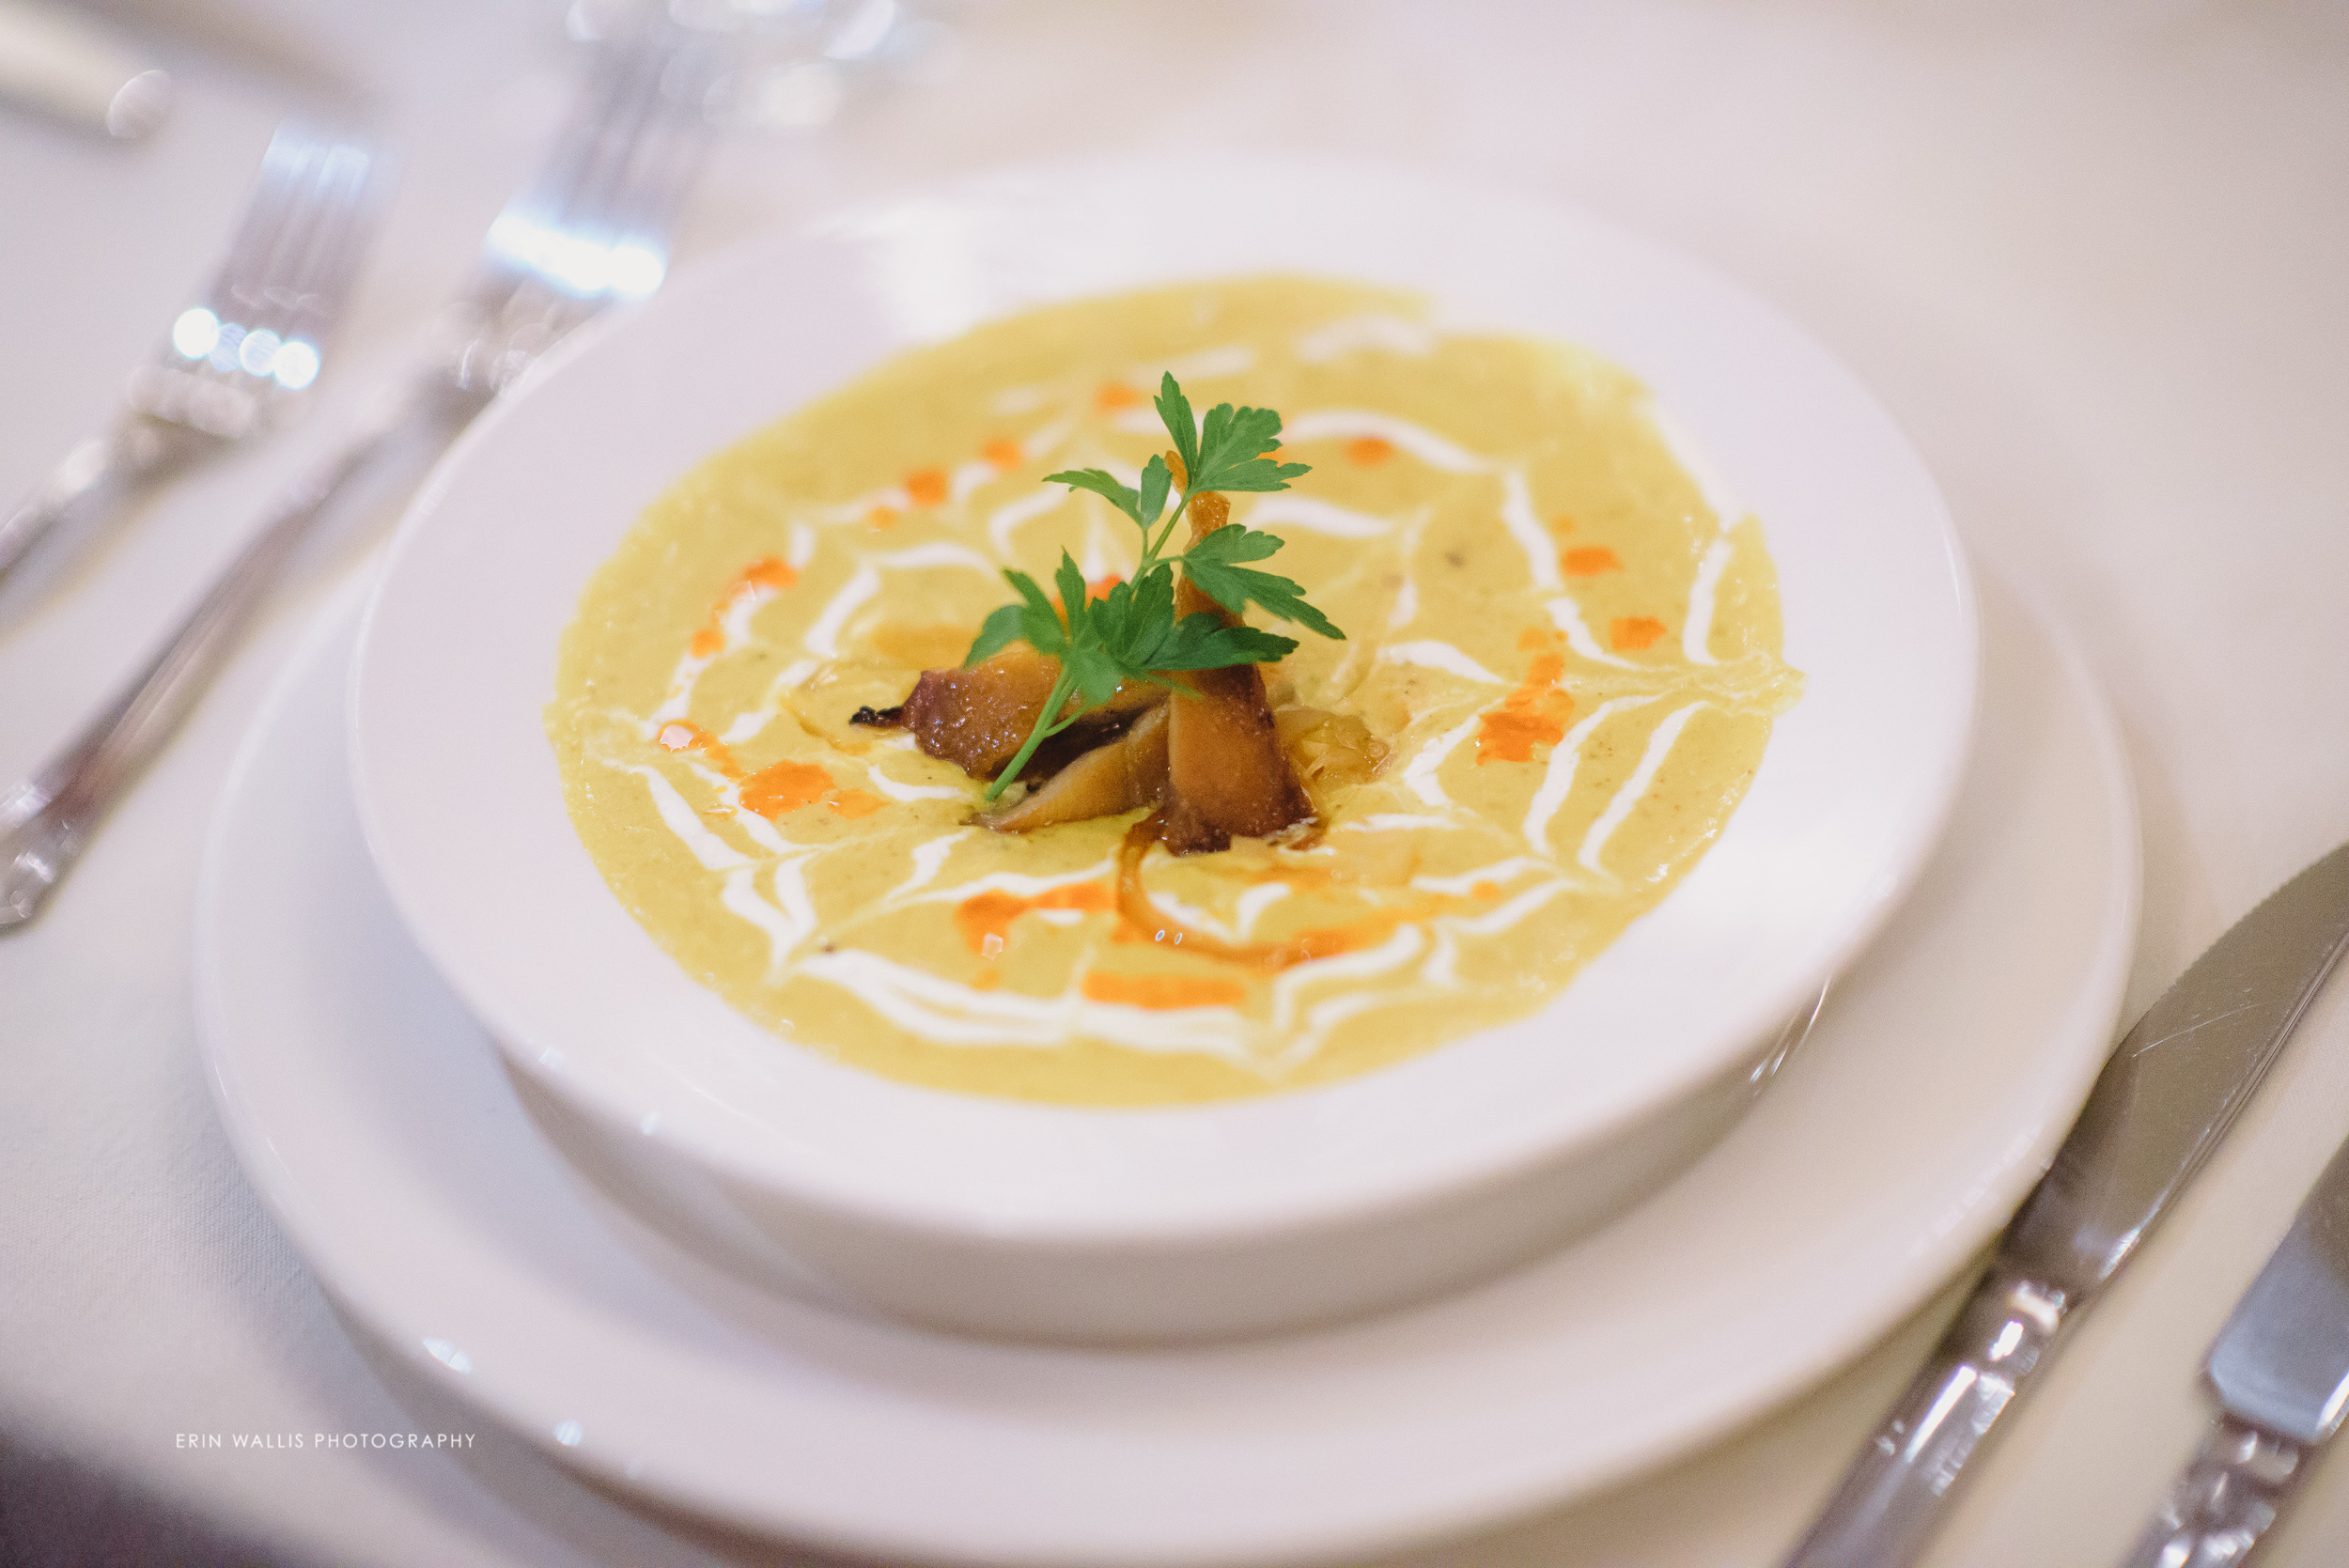 Yellow madras coconut curried corn bisque, melted leek & bell pepper fondue, Fleurer's hot smoked sable fish, creme fraiche & chili oil.